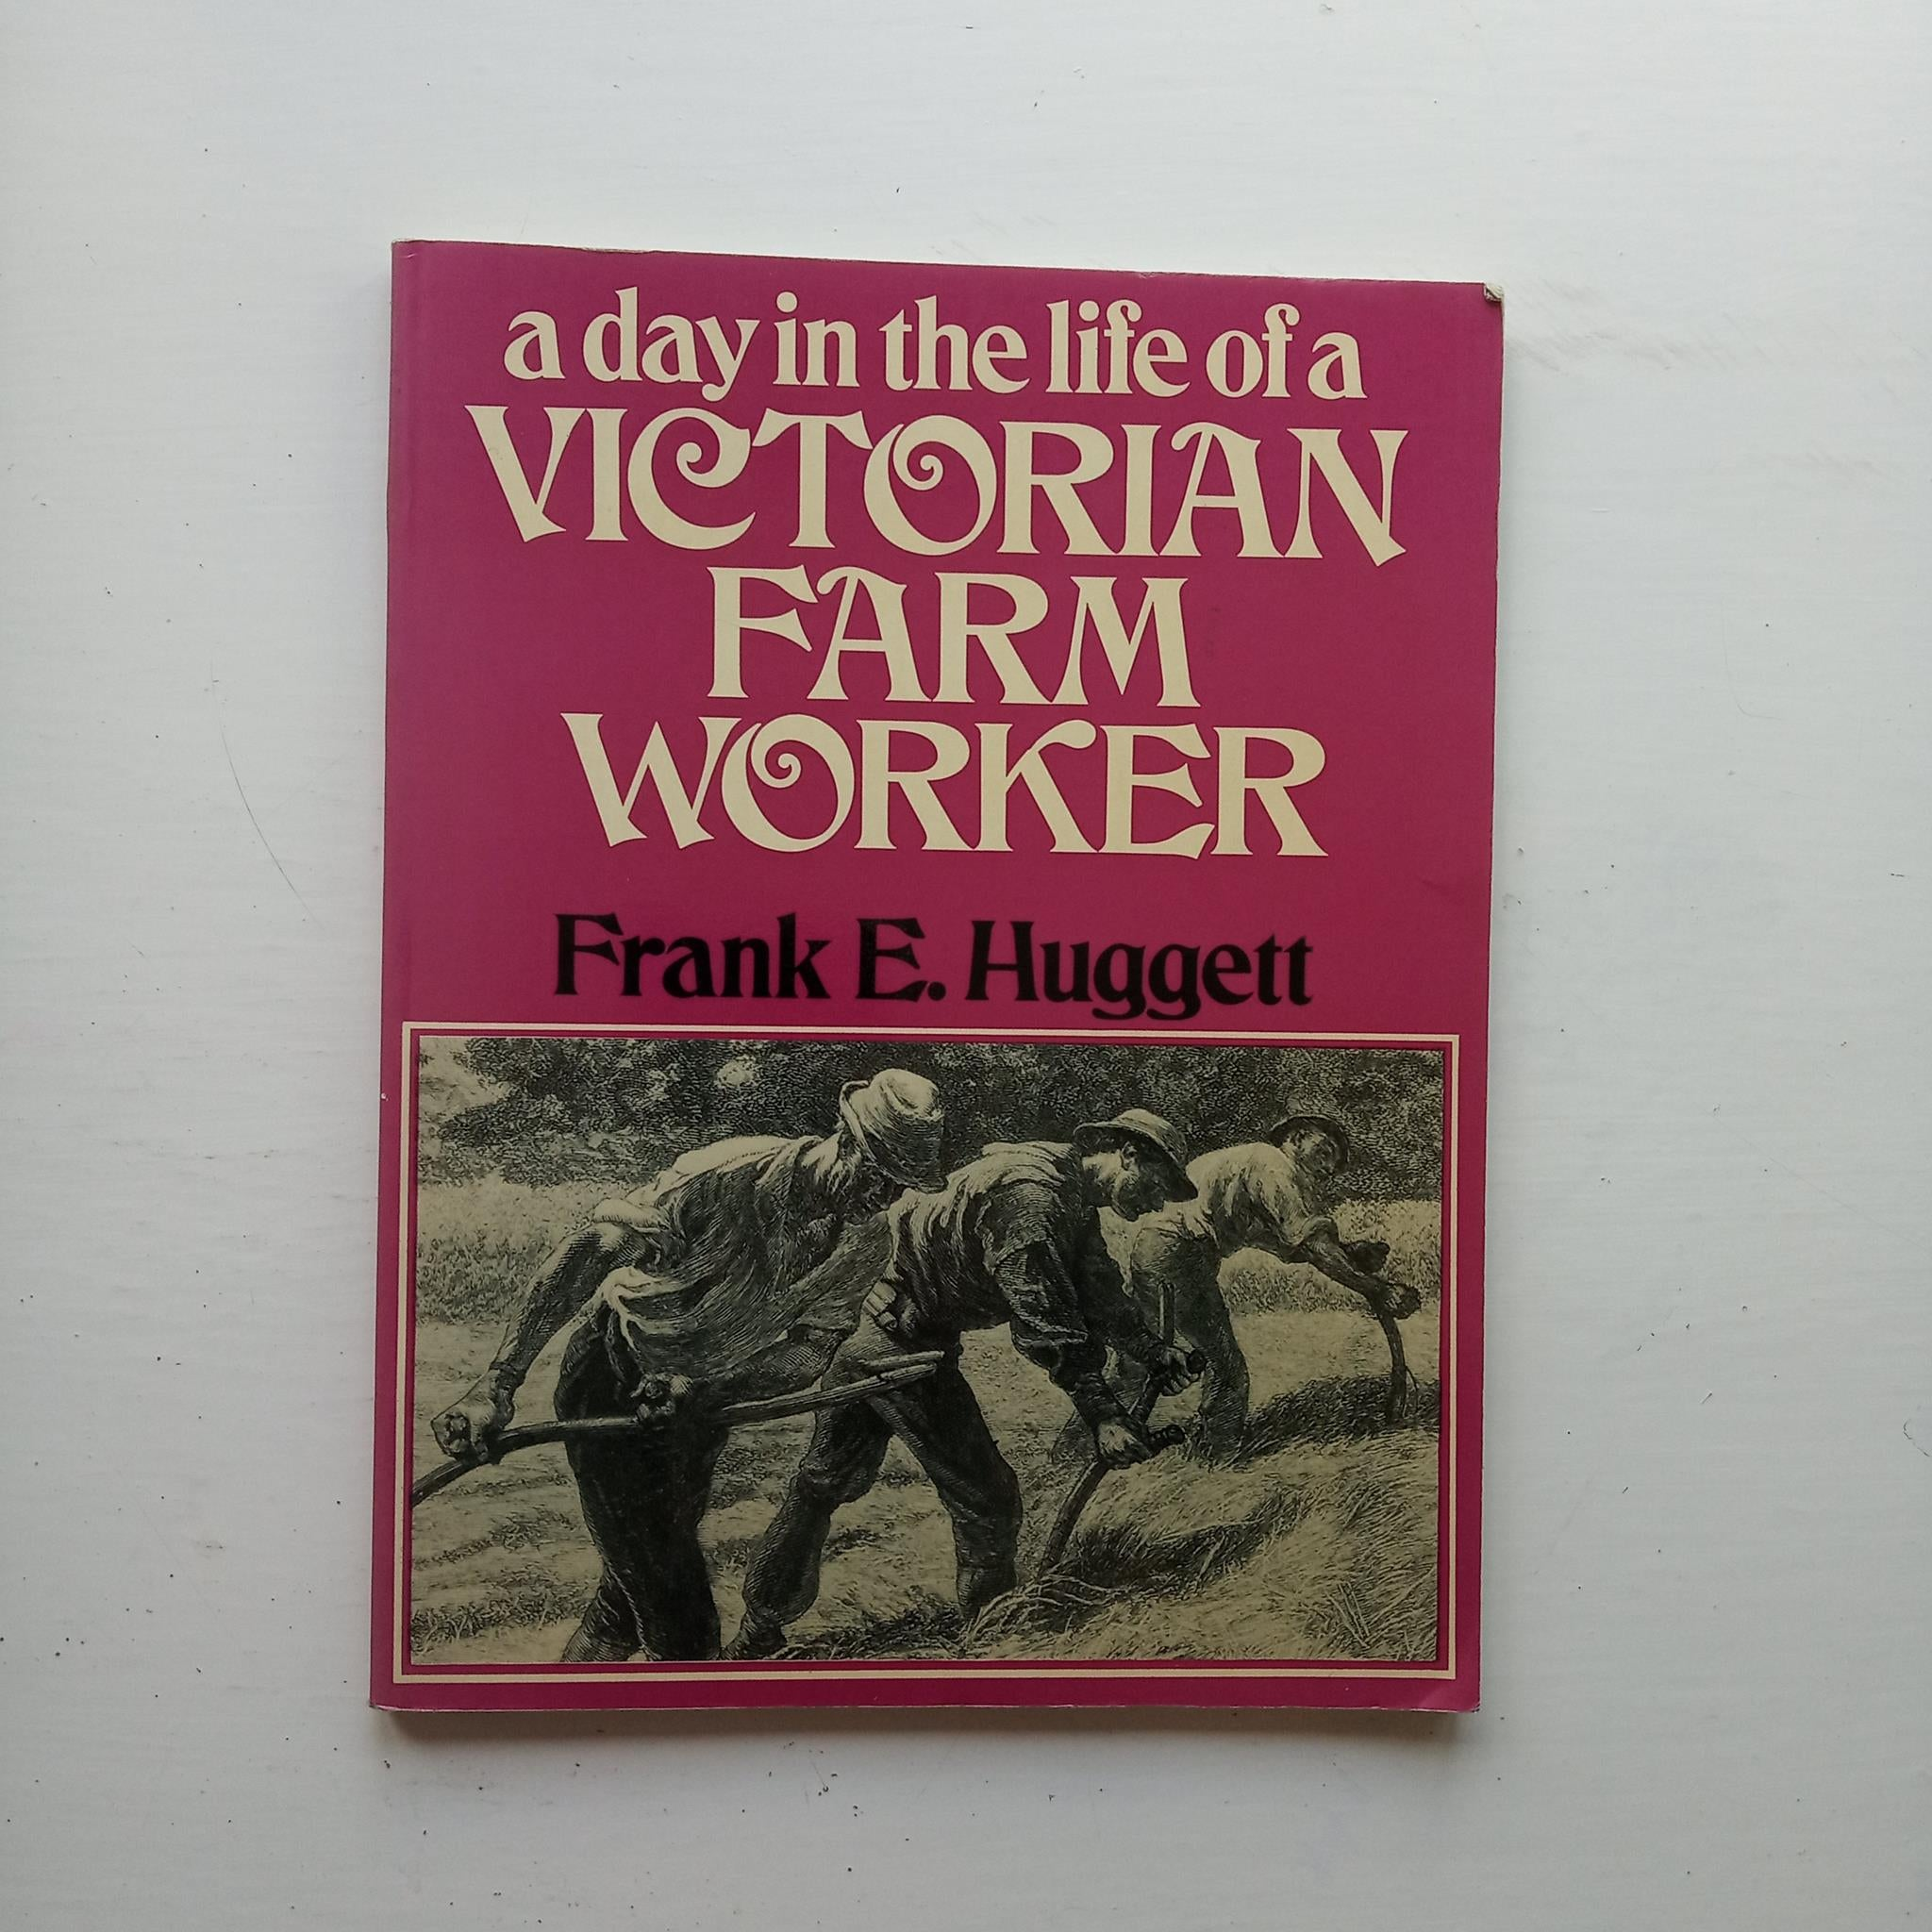 A Day in the Life of a Victorian Farm Worker by Frank E. Huggett